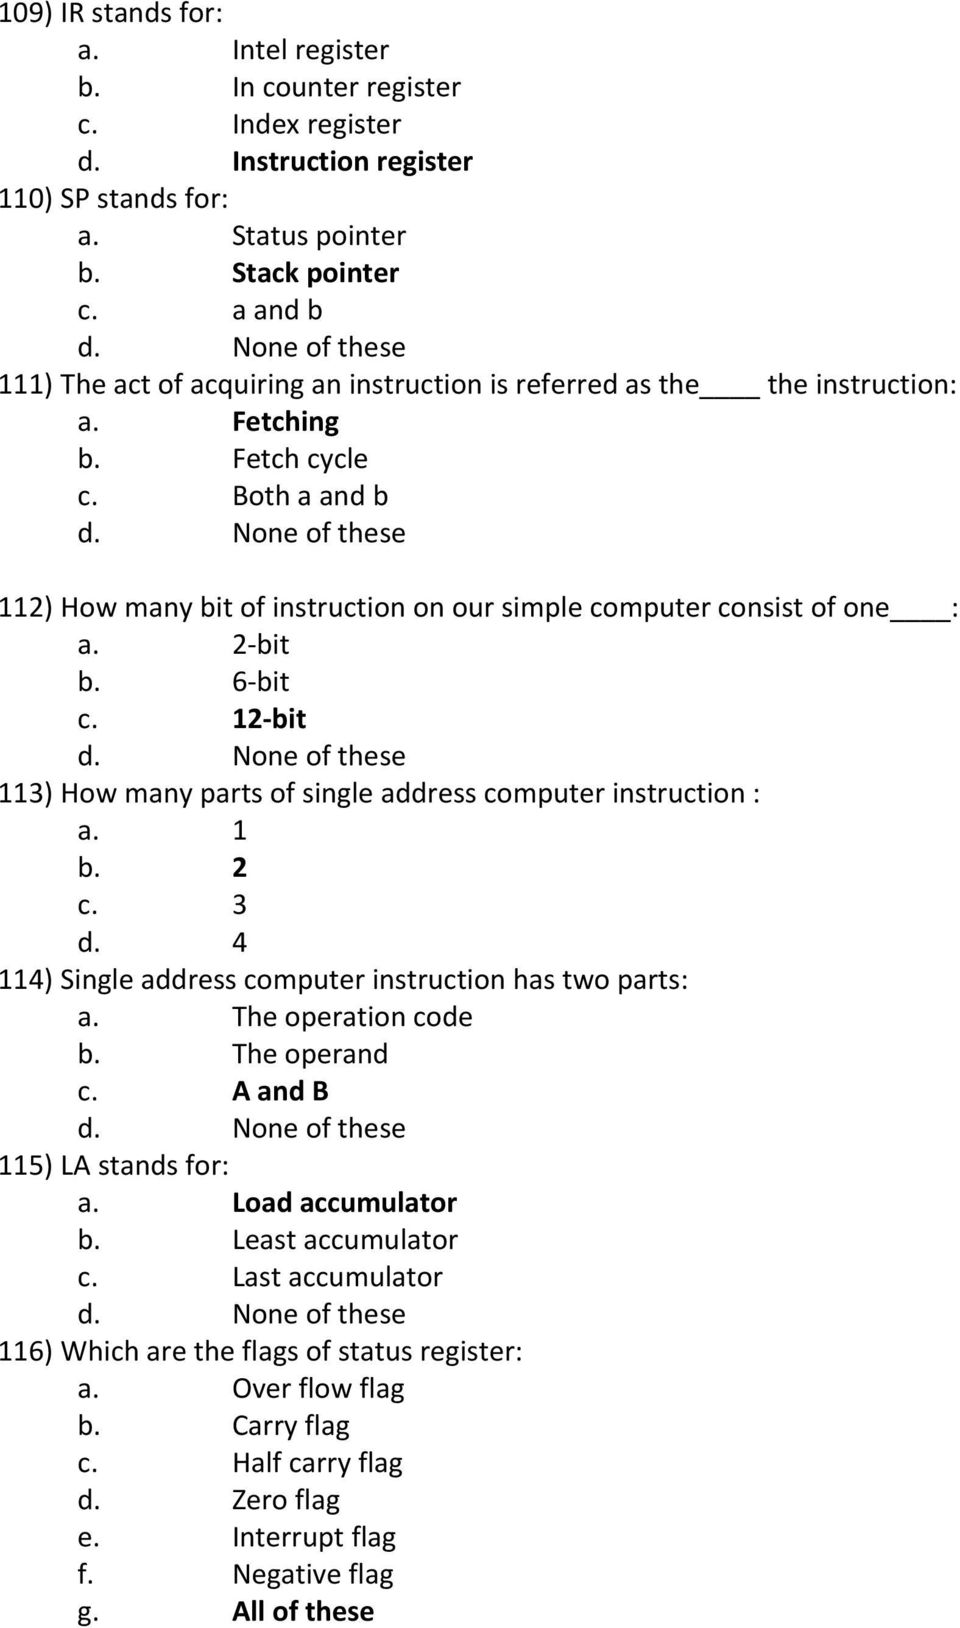 Both a and b 112) How many bit of instruction on our simple computer consist of one : a. 2 bit b. 6 bit c. 12 bit 113) How many parts of single address computer instruction : a. 1 b. 2 c. 3 d.